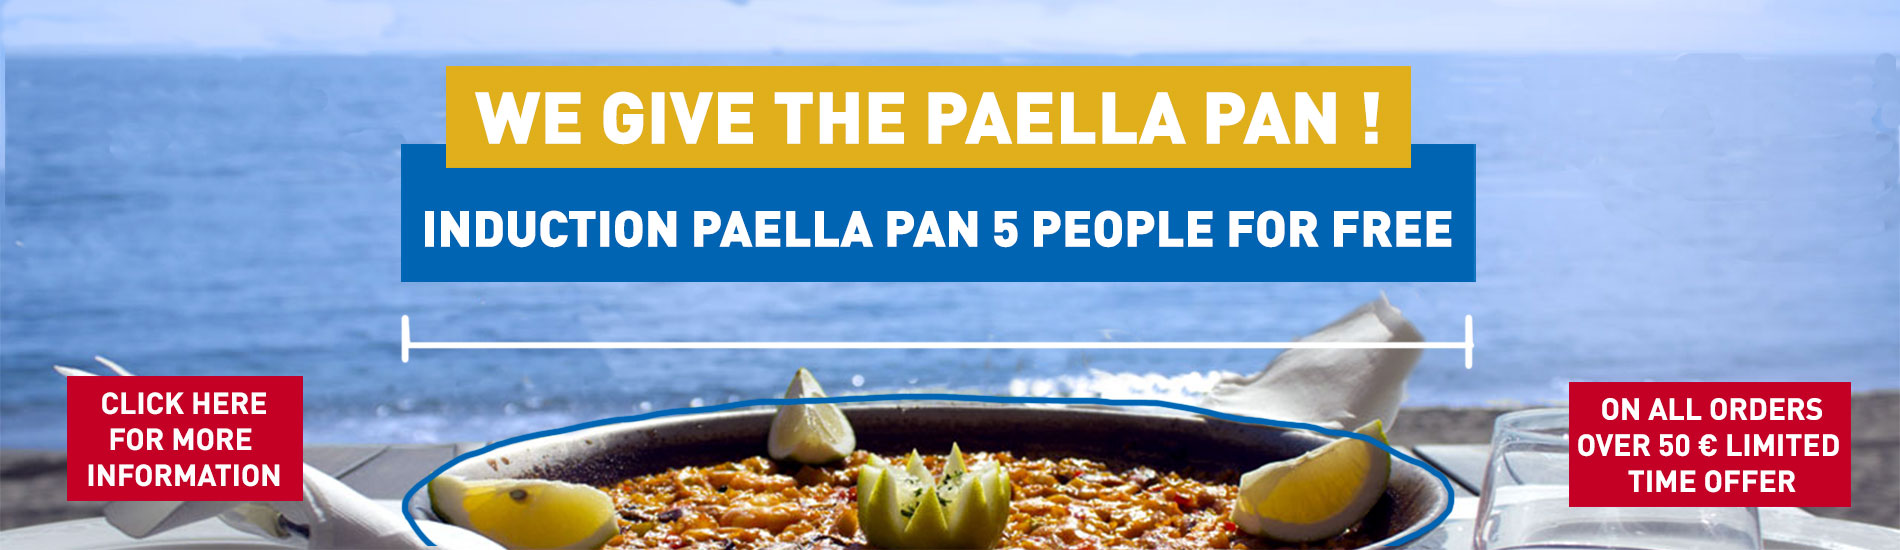 induction paella pan for 3 -5 people for free